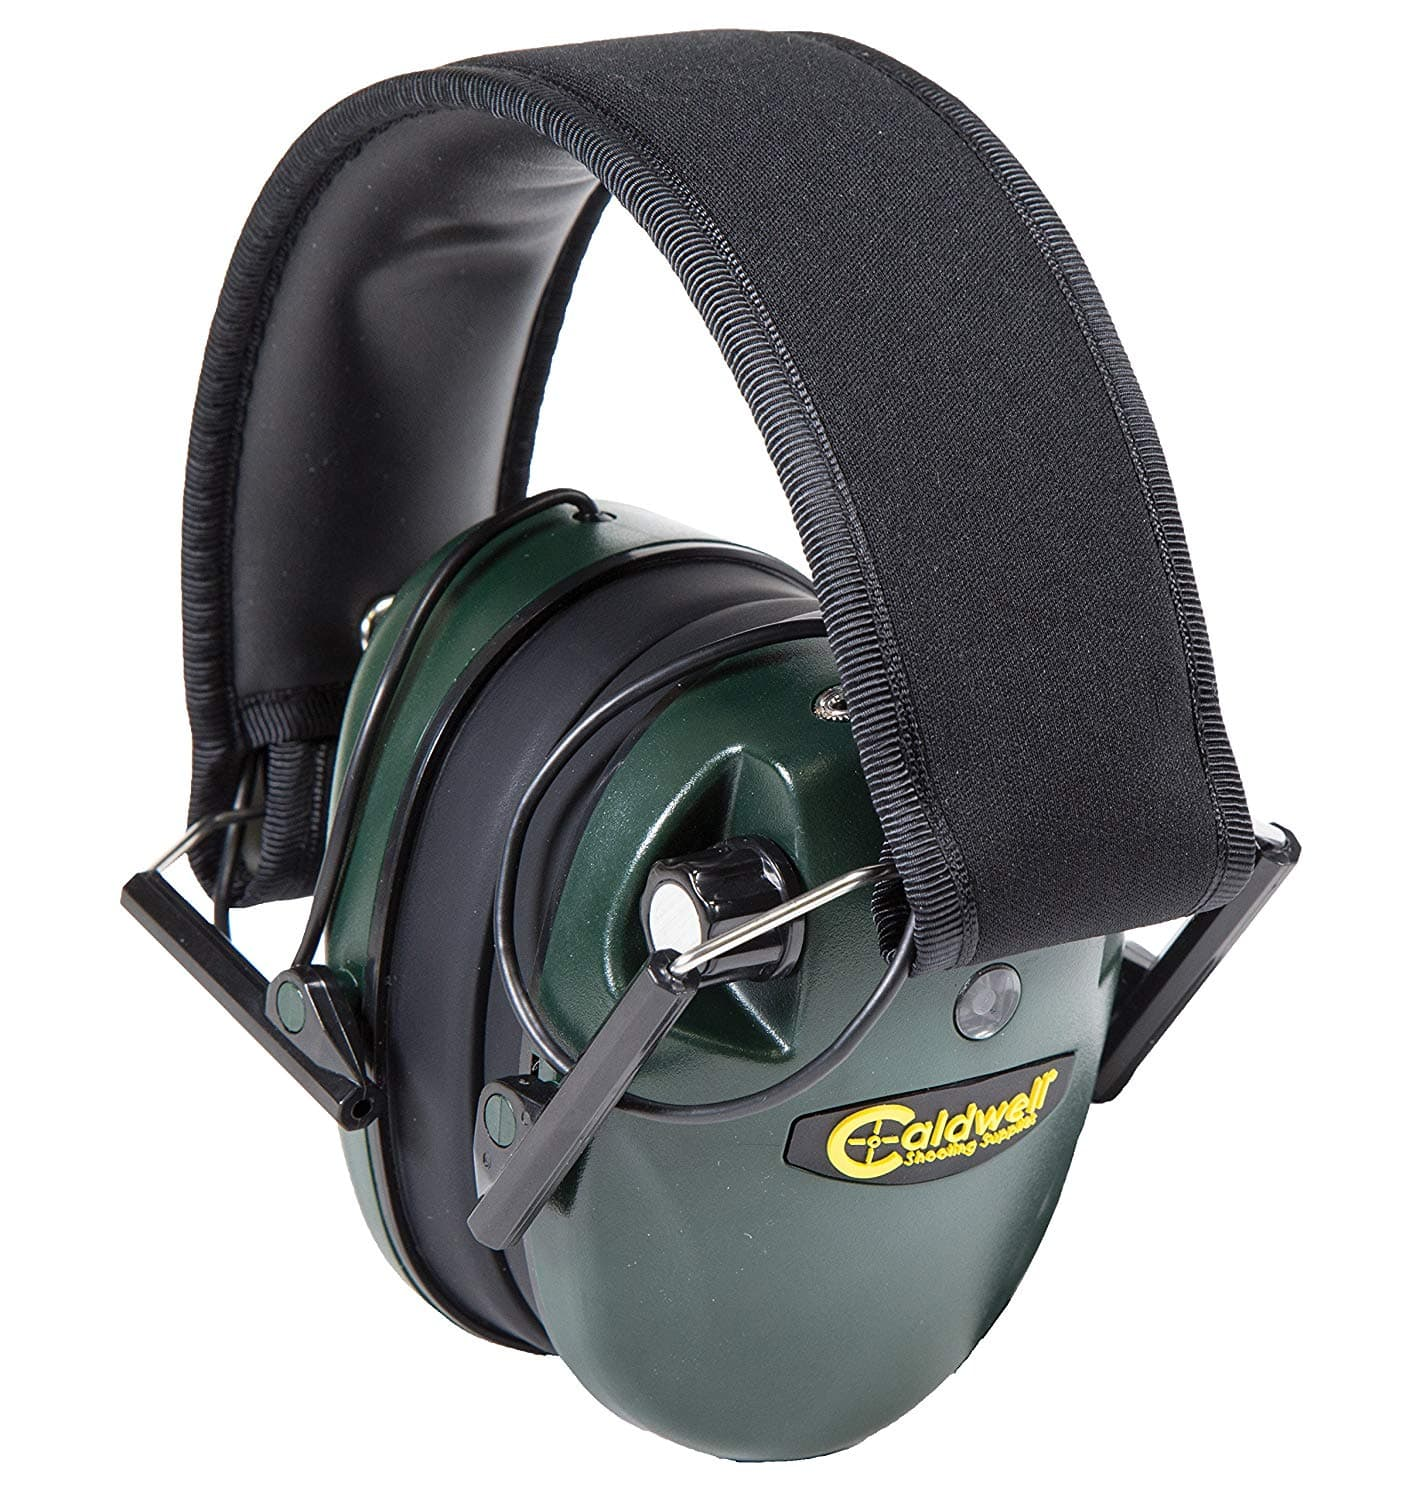 Caldwell E-Max Low Profile Electronic 20-23 NRR Hearing Protection with Sound Amplification and Adjustable Earmuffs for Shooting, Hunting and Range $18.09